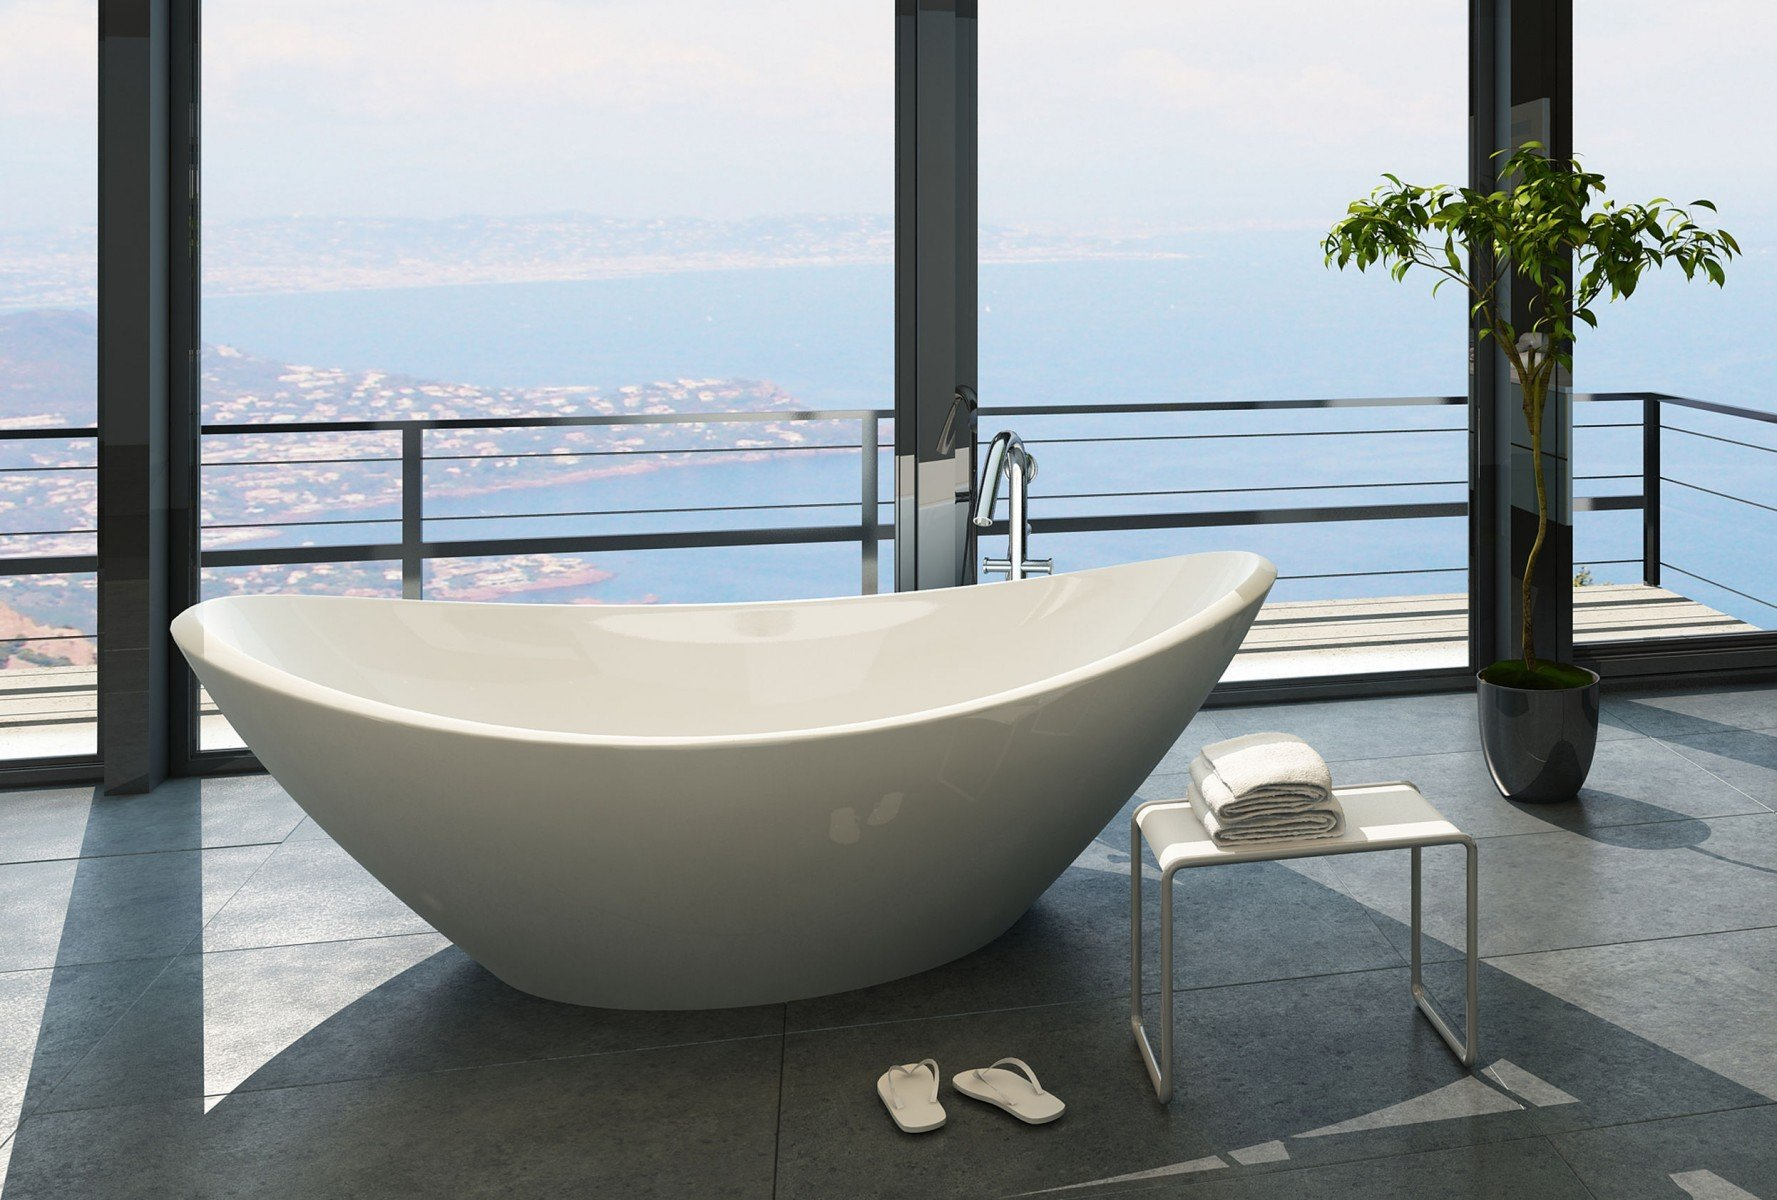 Inspirational Bathrooms: Luxury Ideas to Inspire Your Next Redesign